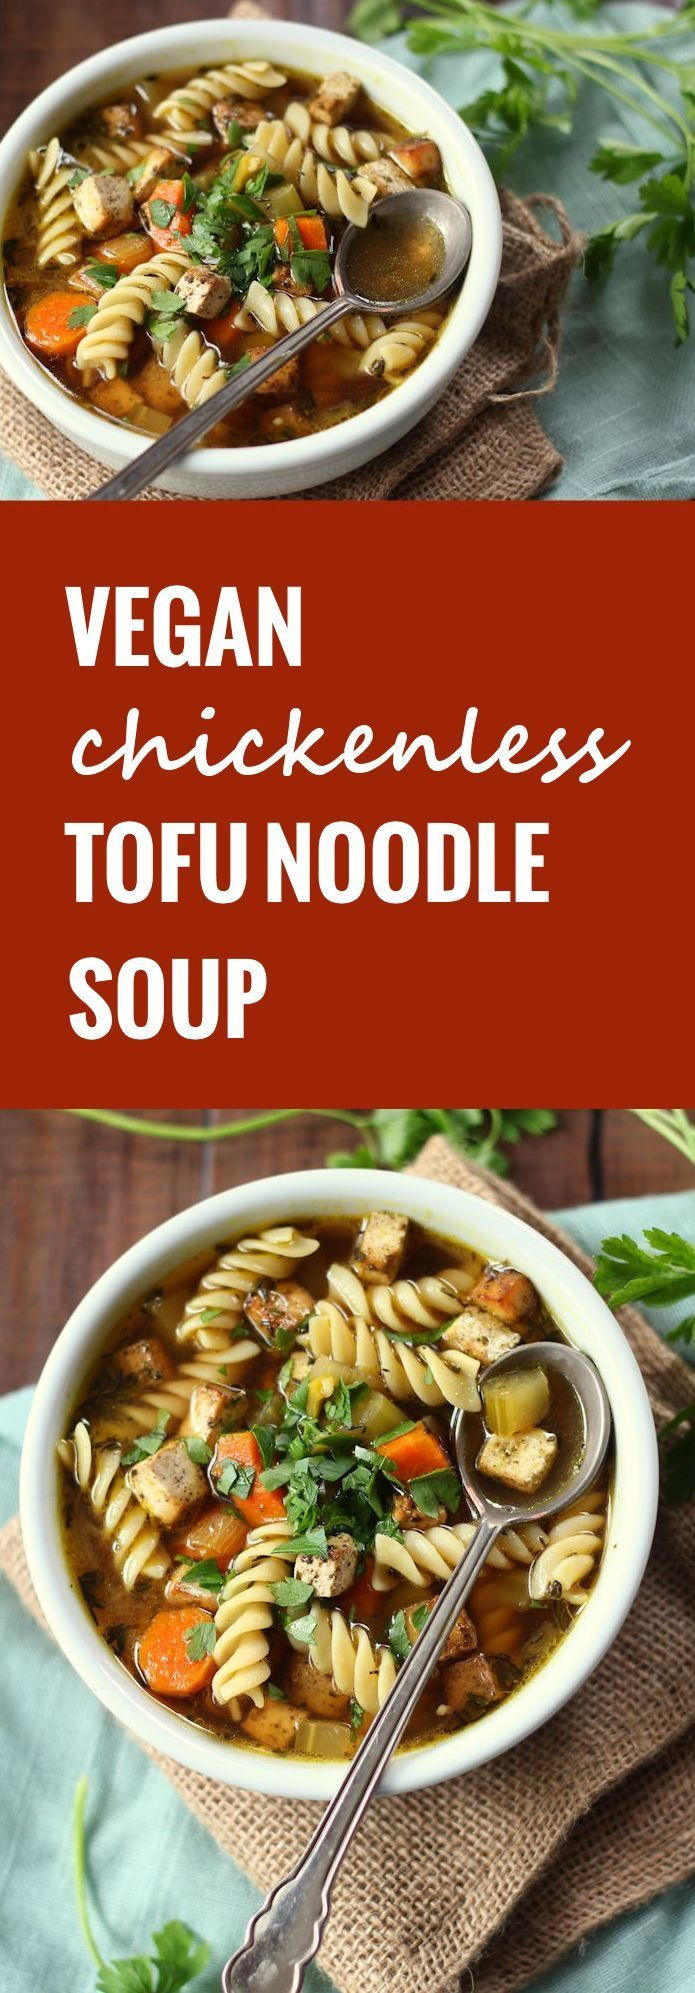 This tofu noodle soup features savory baked tofu, lots of noodles and tender veggies simmered in seasoned vegetable broth.